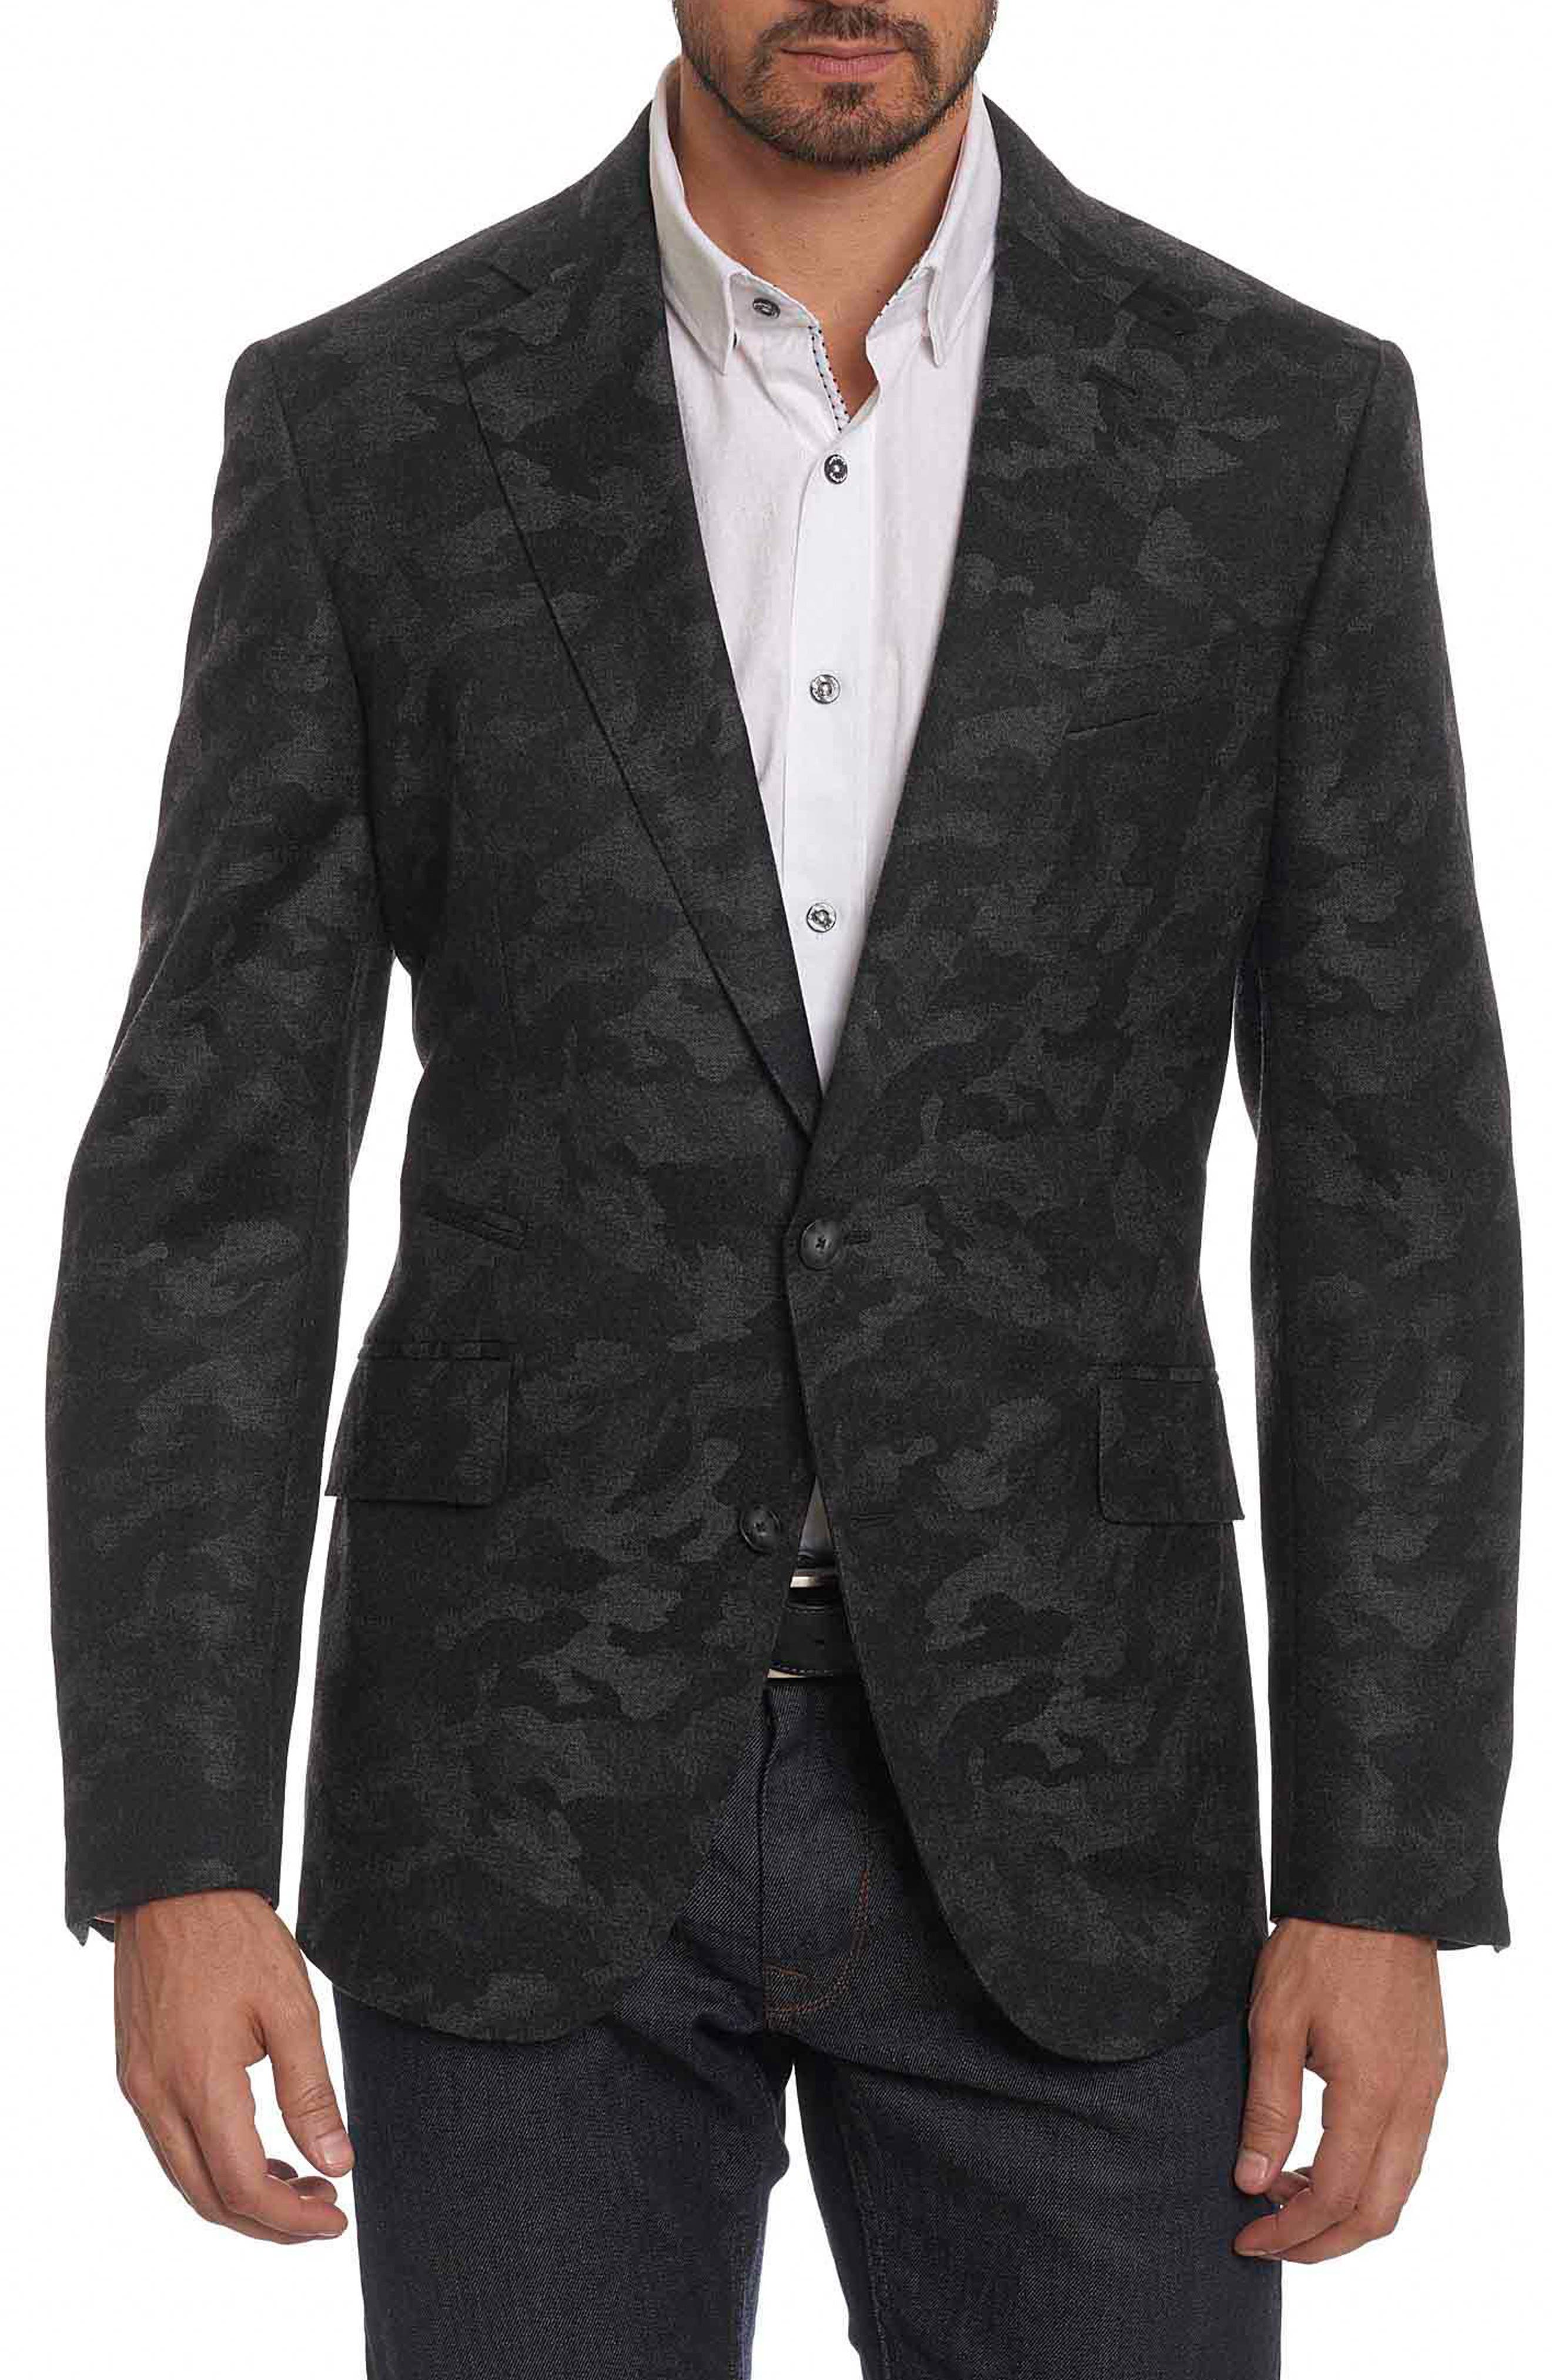 Portgain Classic Fit Sport Coat,                         Main,                         color, 063